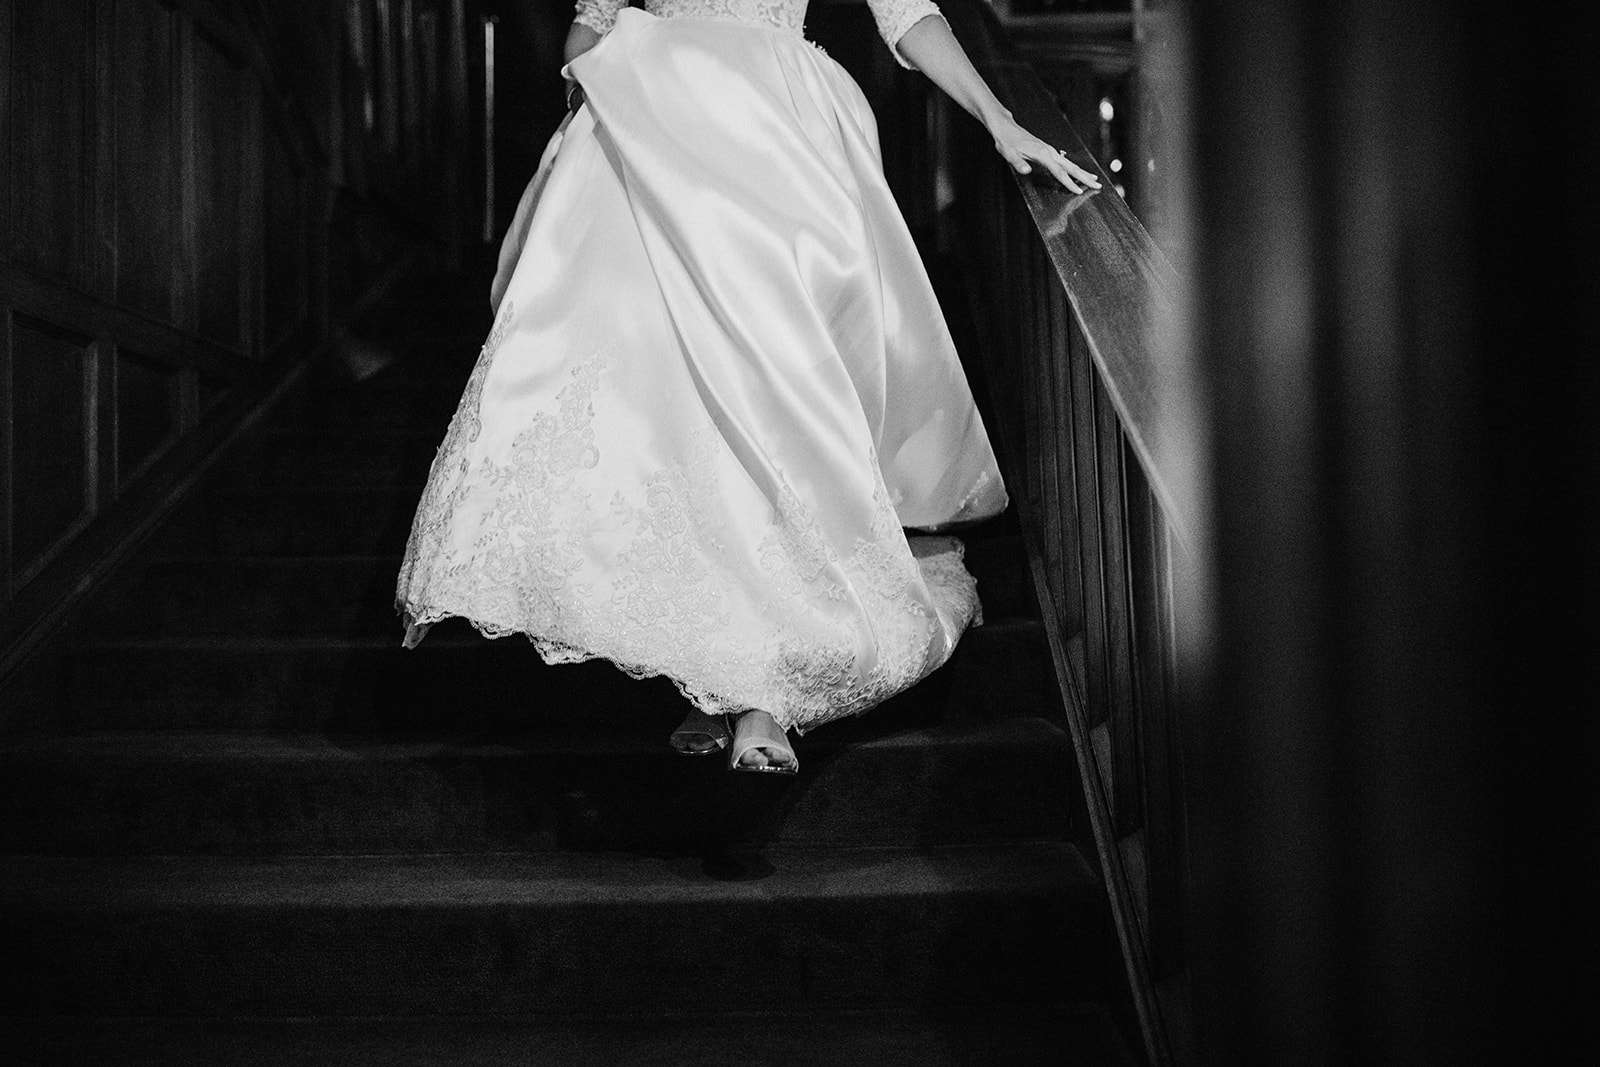 Hatley Castle Wedding - Victoria Wedding Photographer Kim Jay-84.jpg